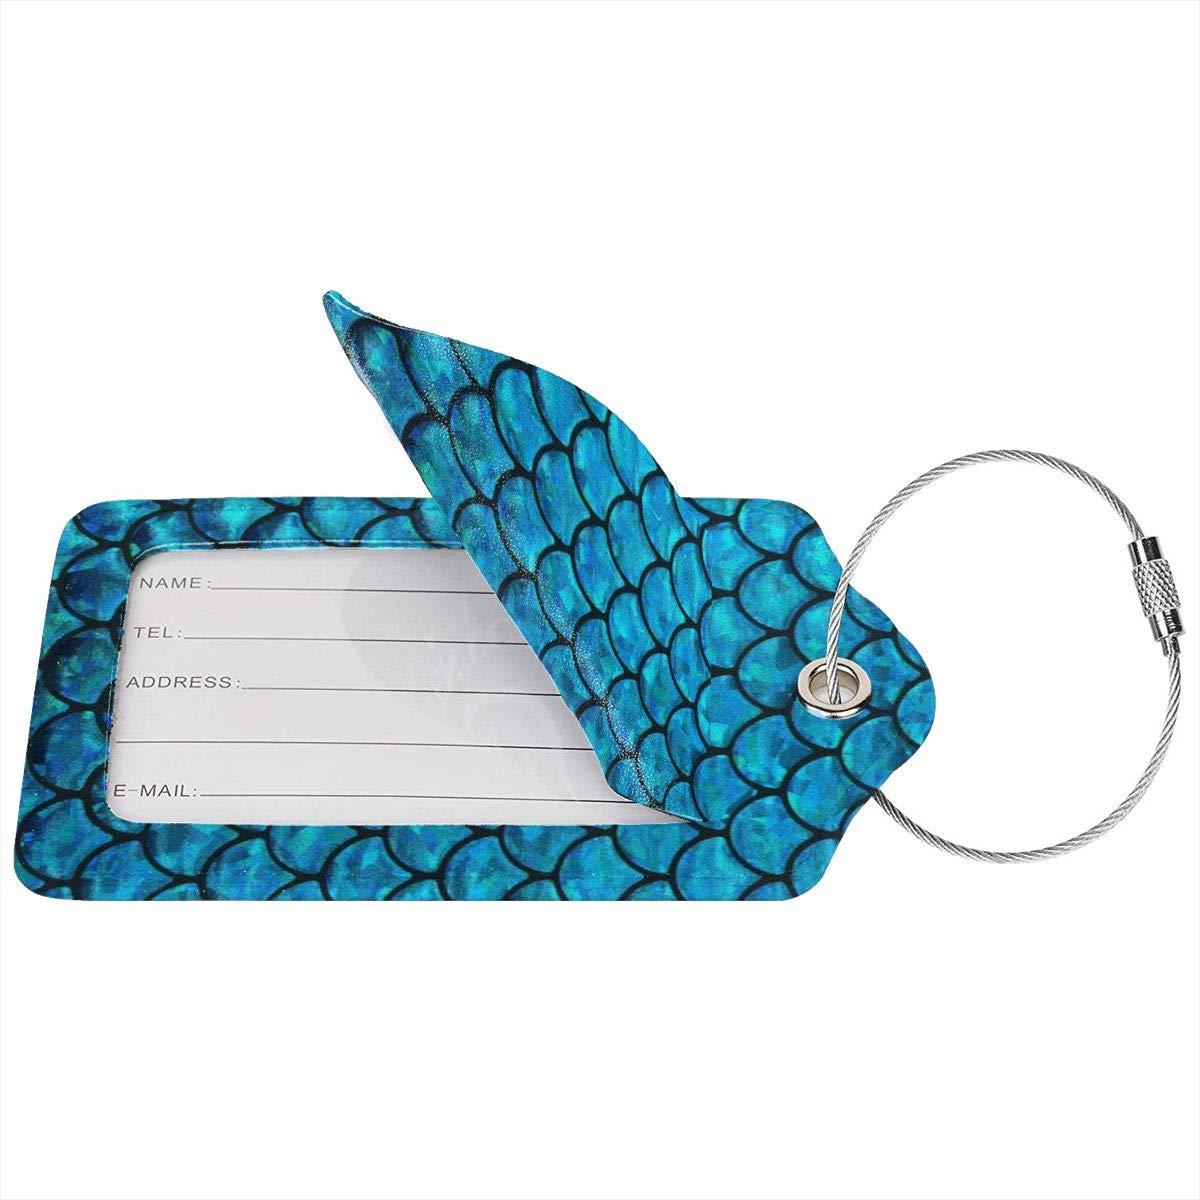 Mermaid Blue Fish Scales Printing Luggage Tag Label Travel Bag Label With Privacy Cover Luggage Tag Leather Personalized Suitcase Tag Travel Accessories